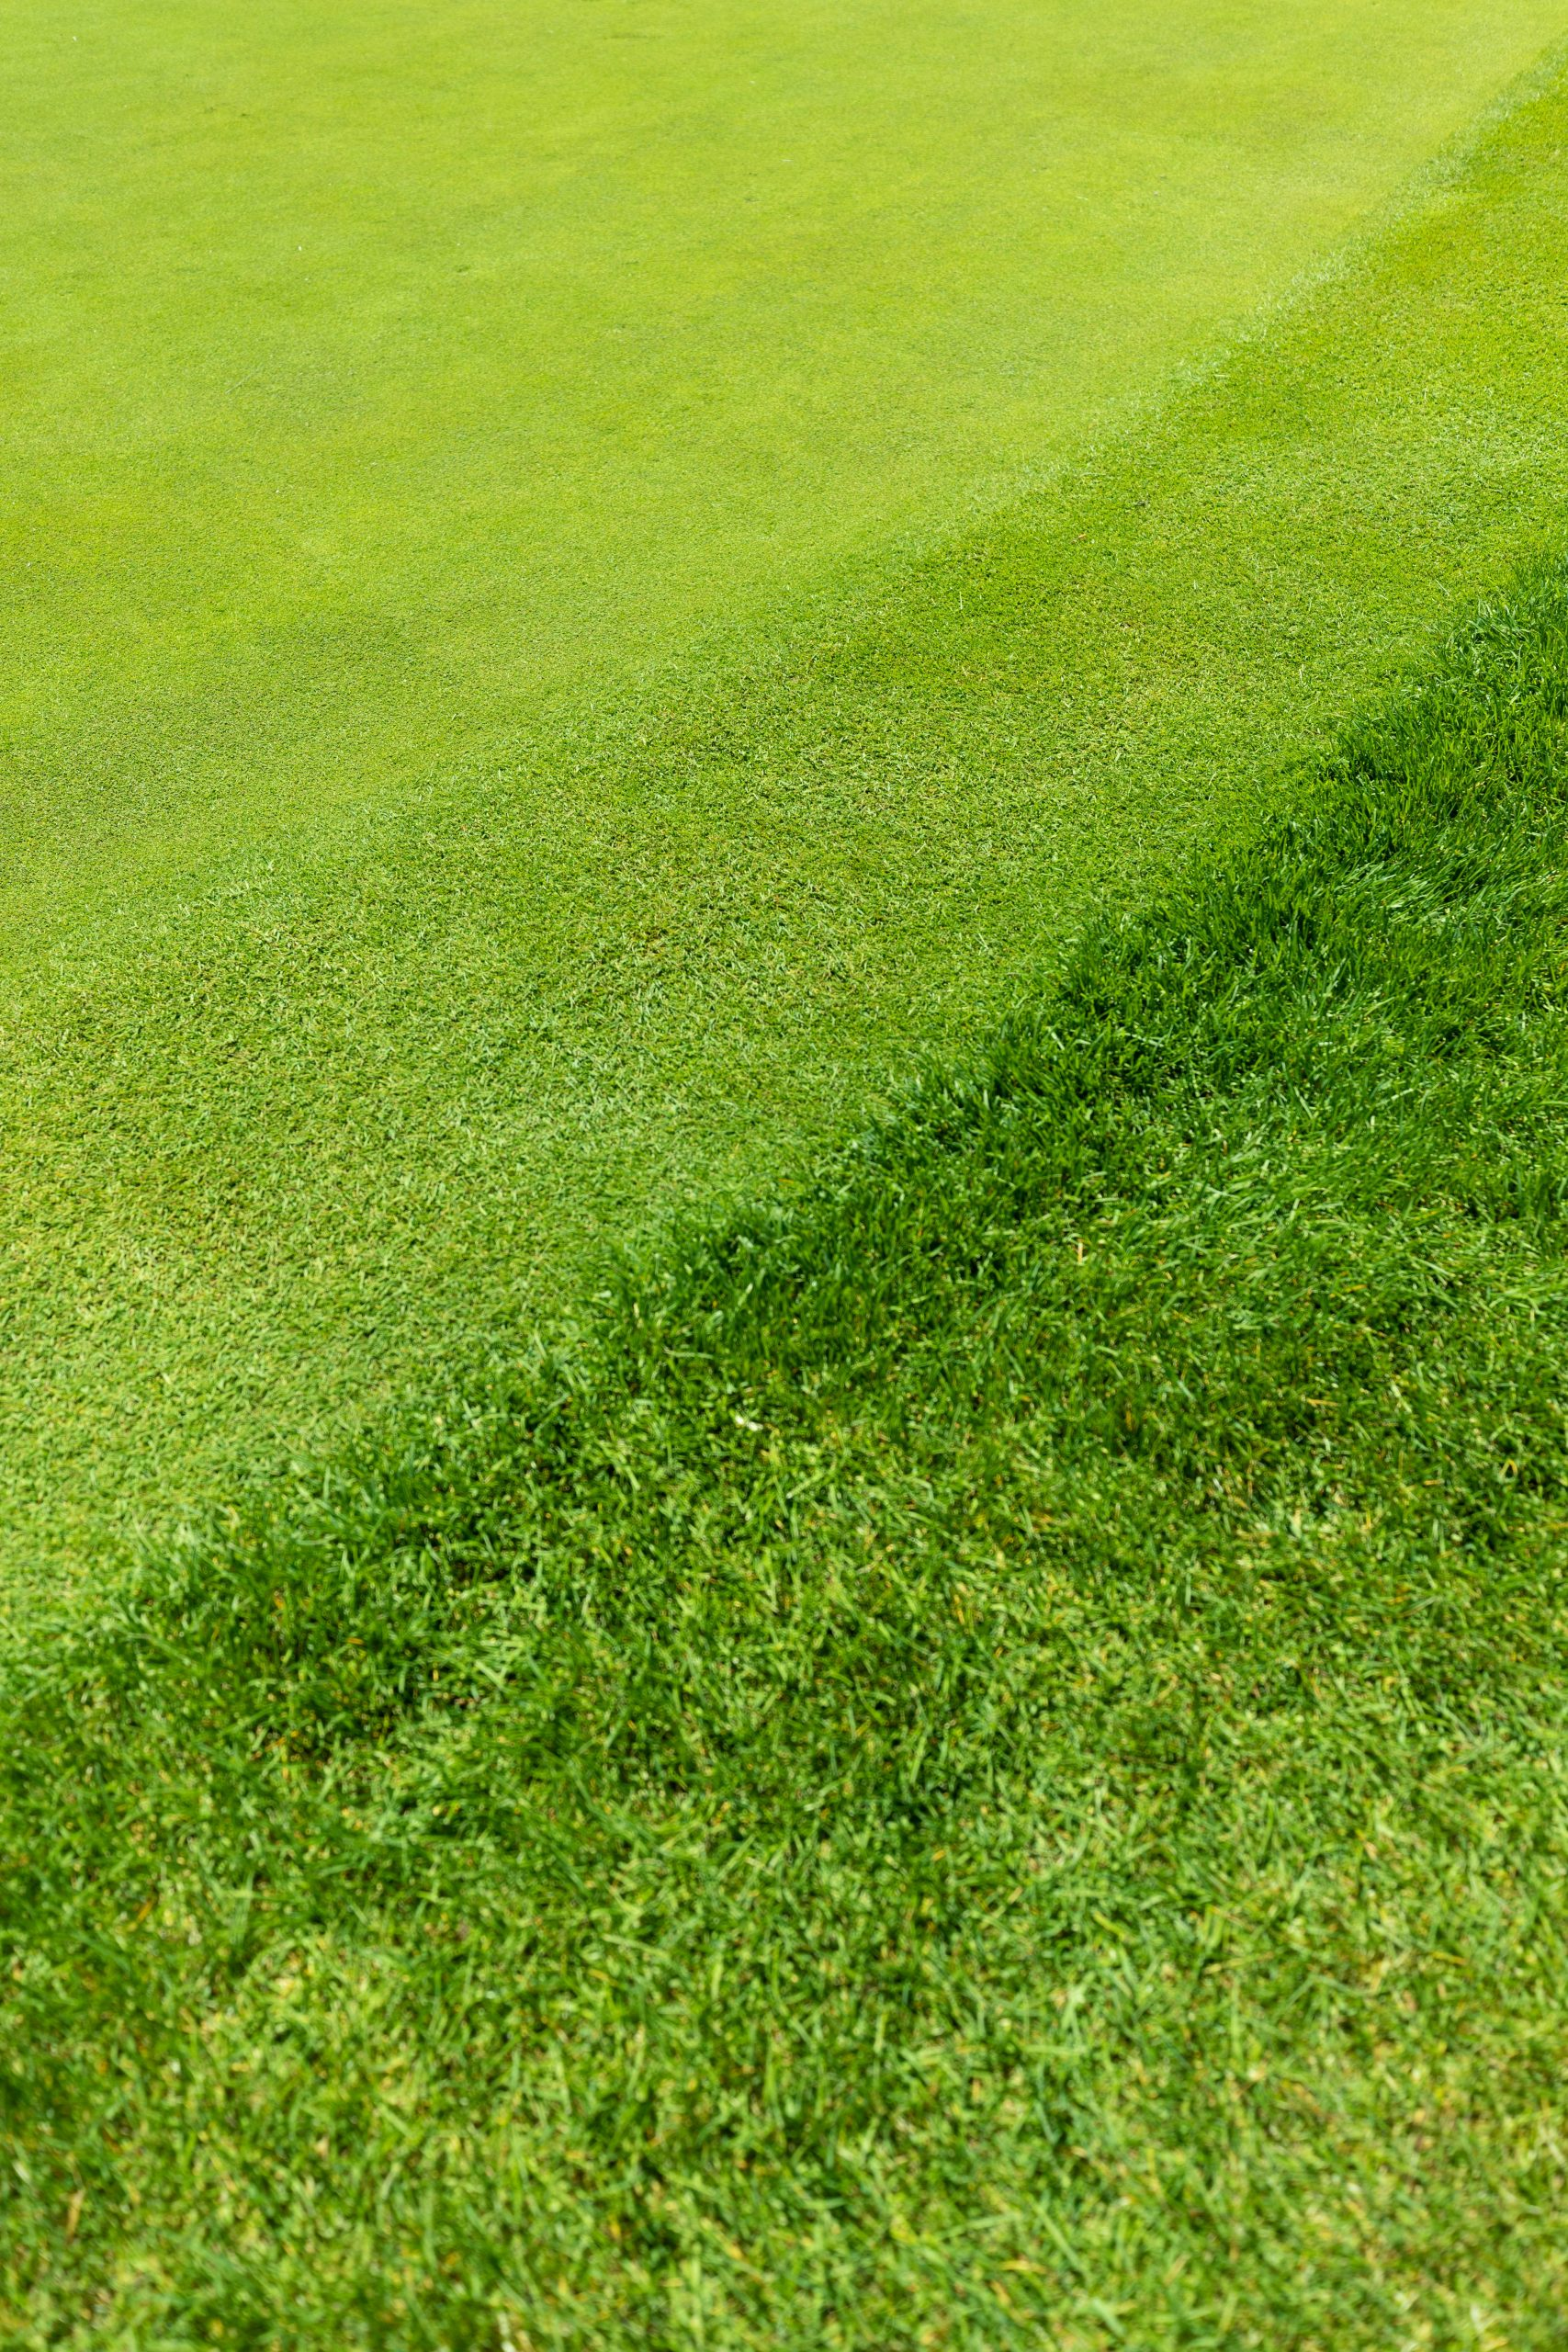 Ombre Putting Greens Golfing at Bay Harbor Golf Club in Northern Michigan by @AnnieFairfax